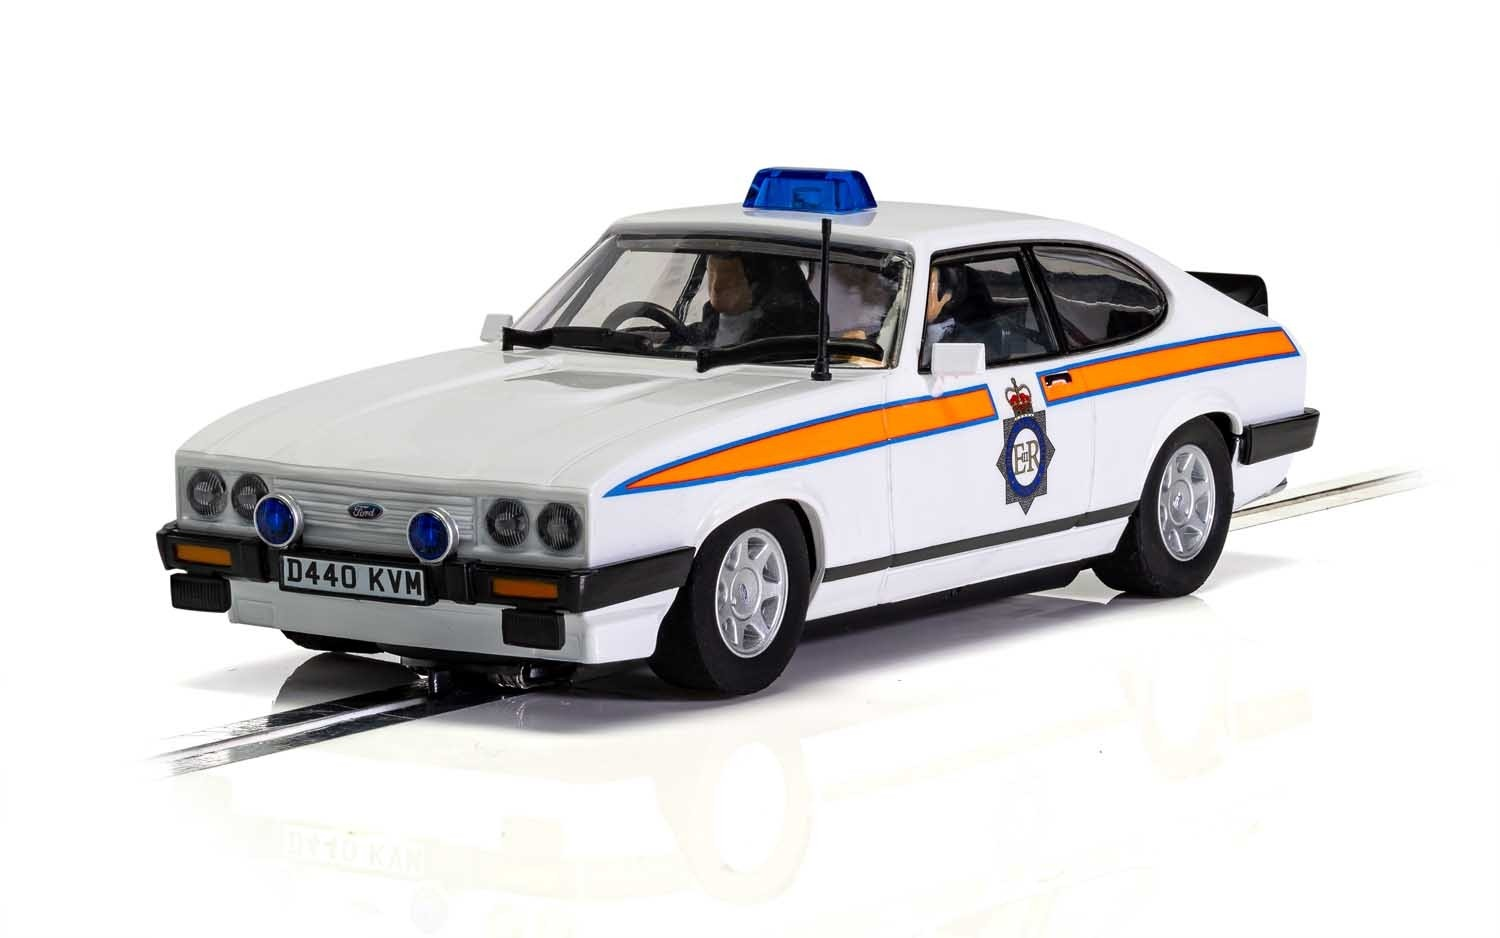 Ford Capri MK3 - Greater Manchester Police